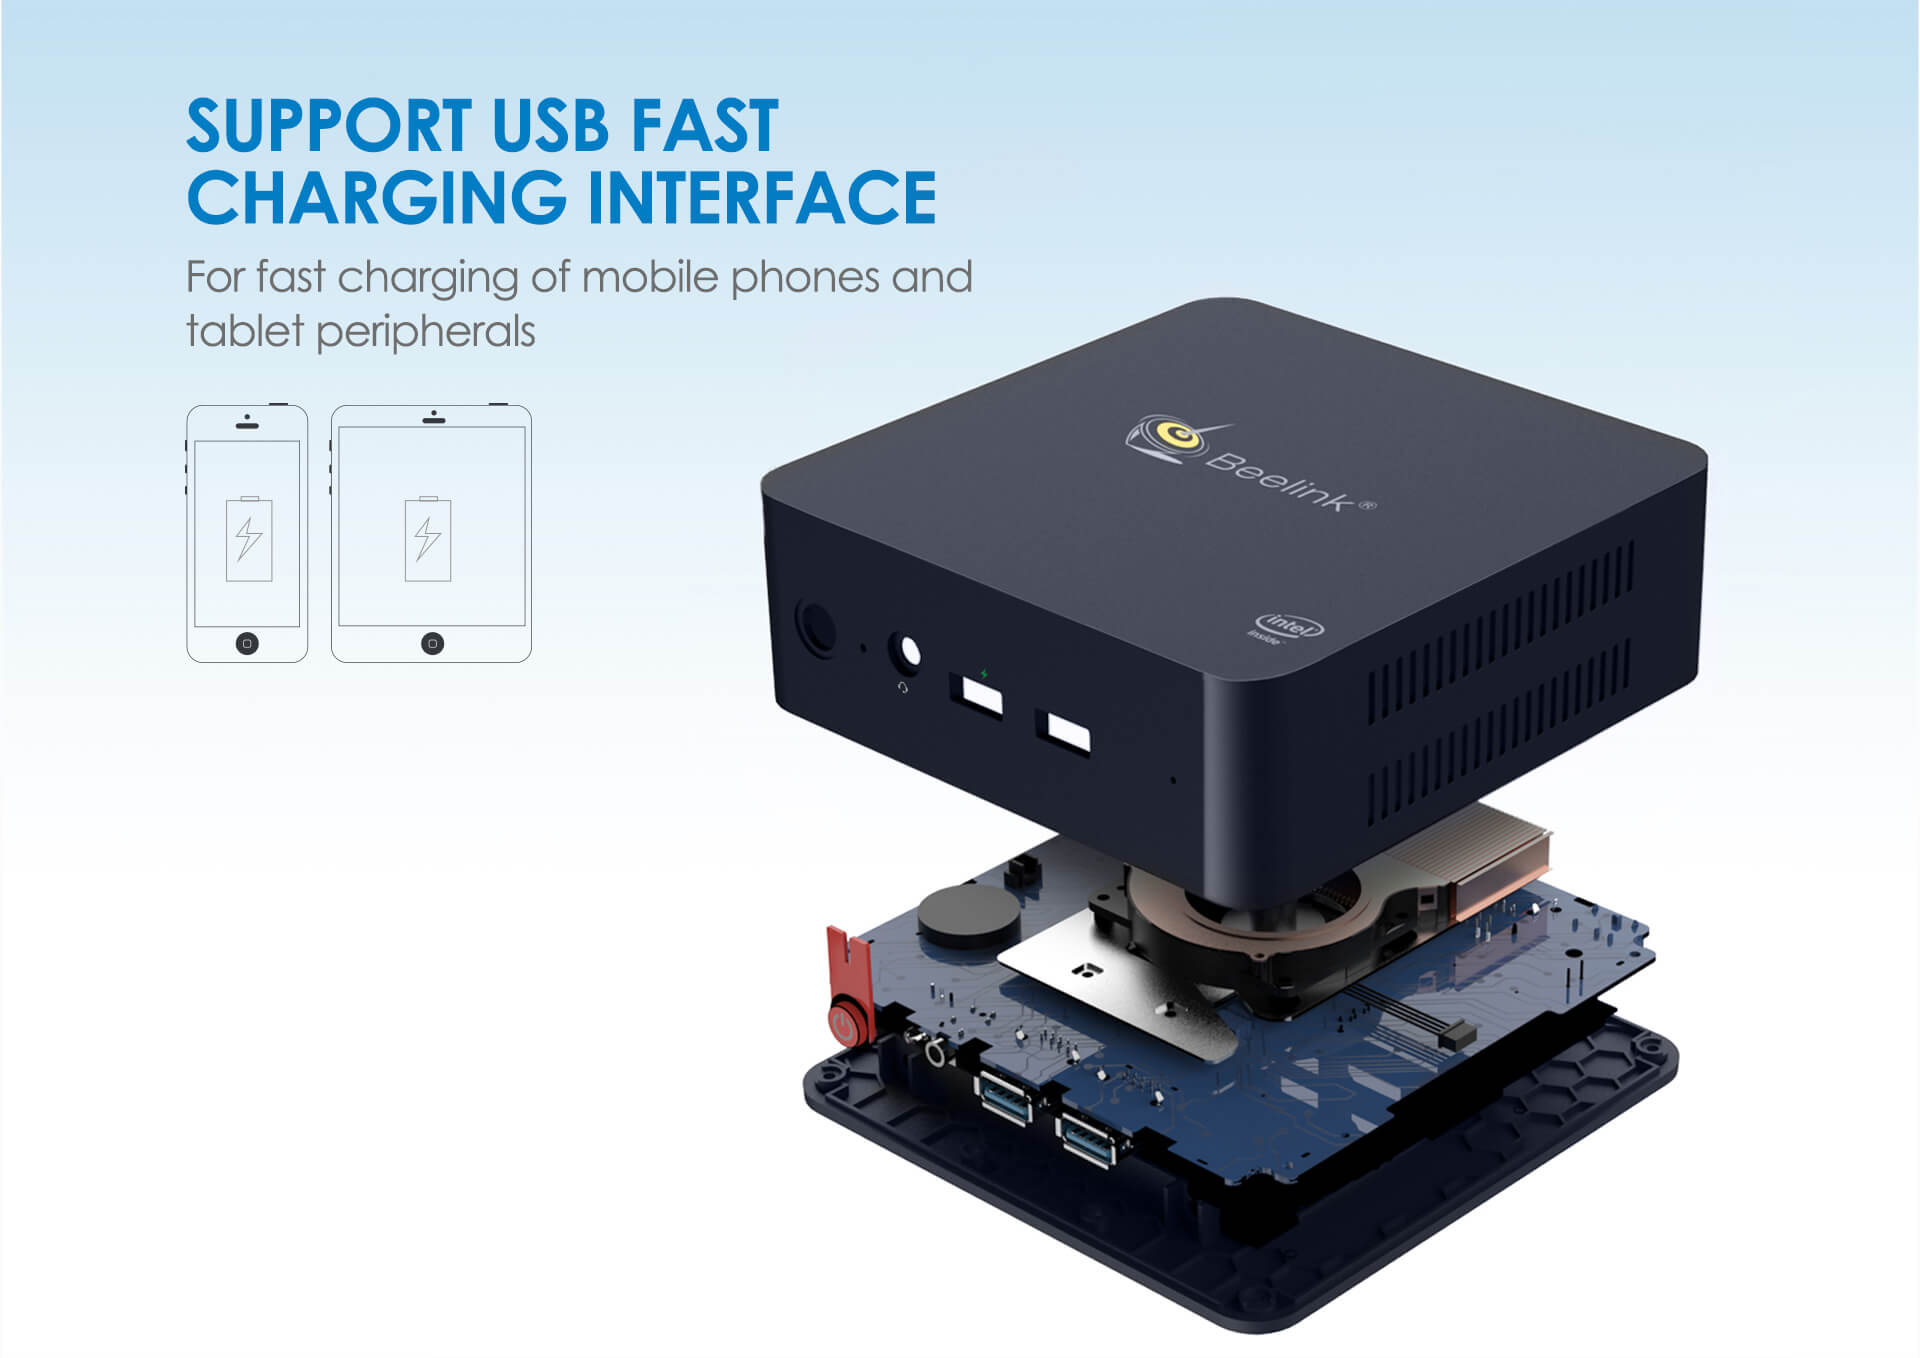 Beelink-L55-mini-PC-fast-charging